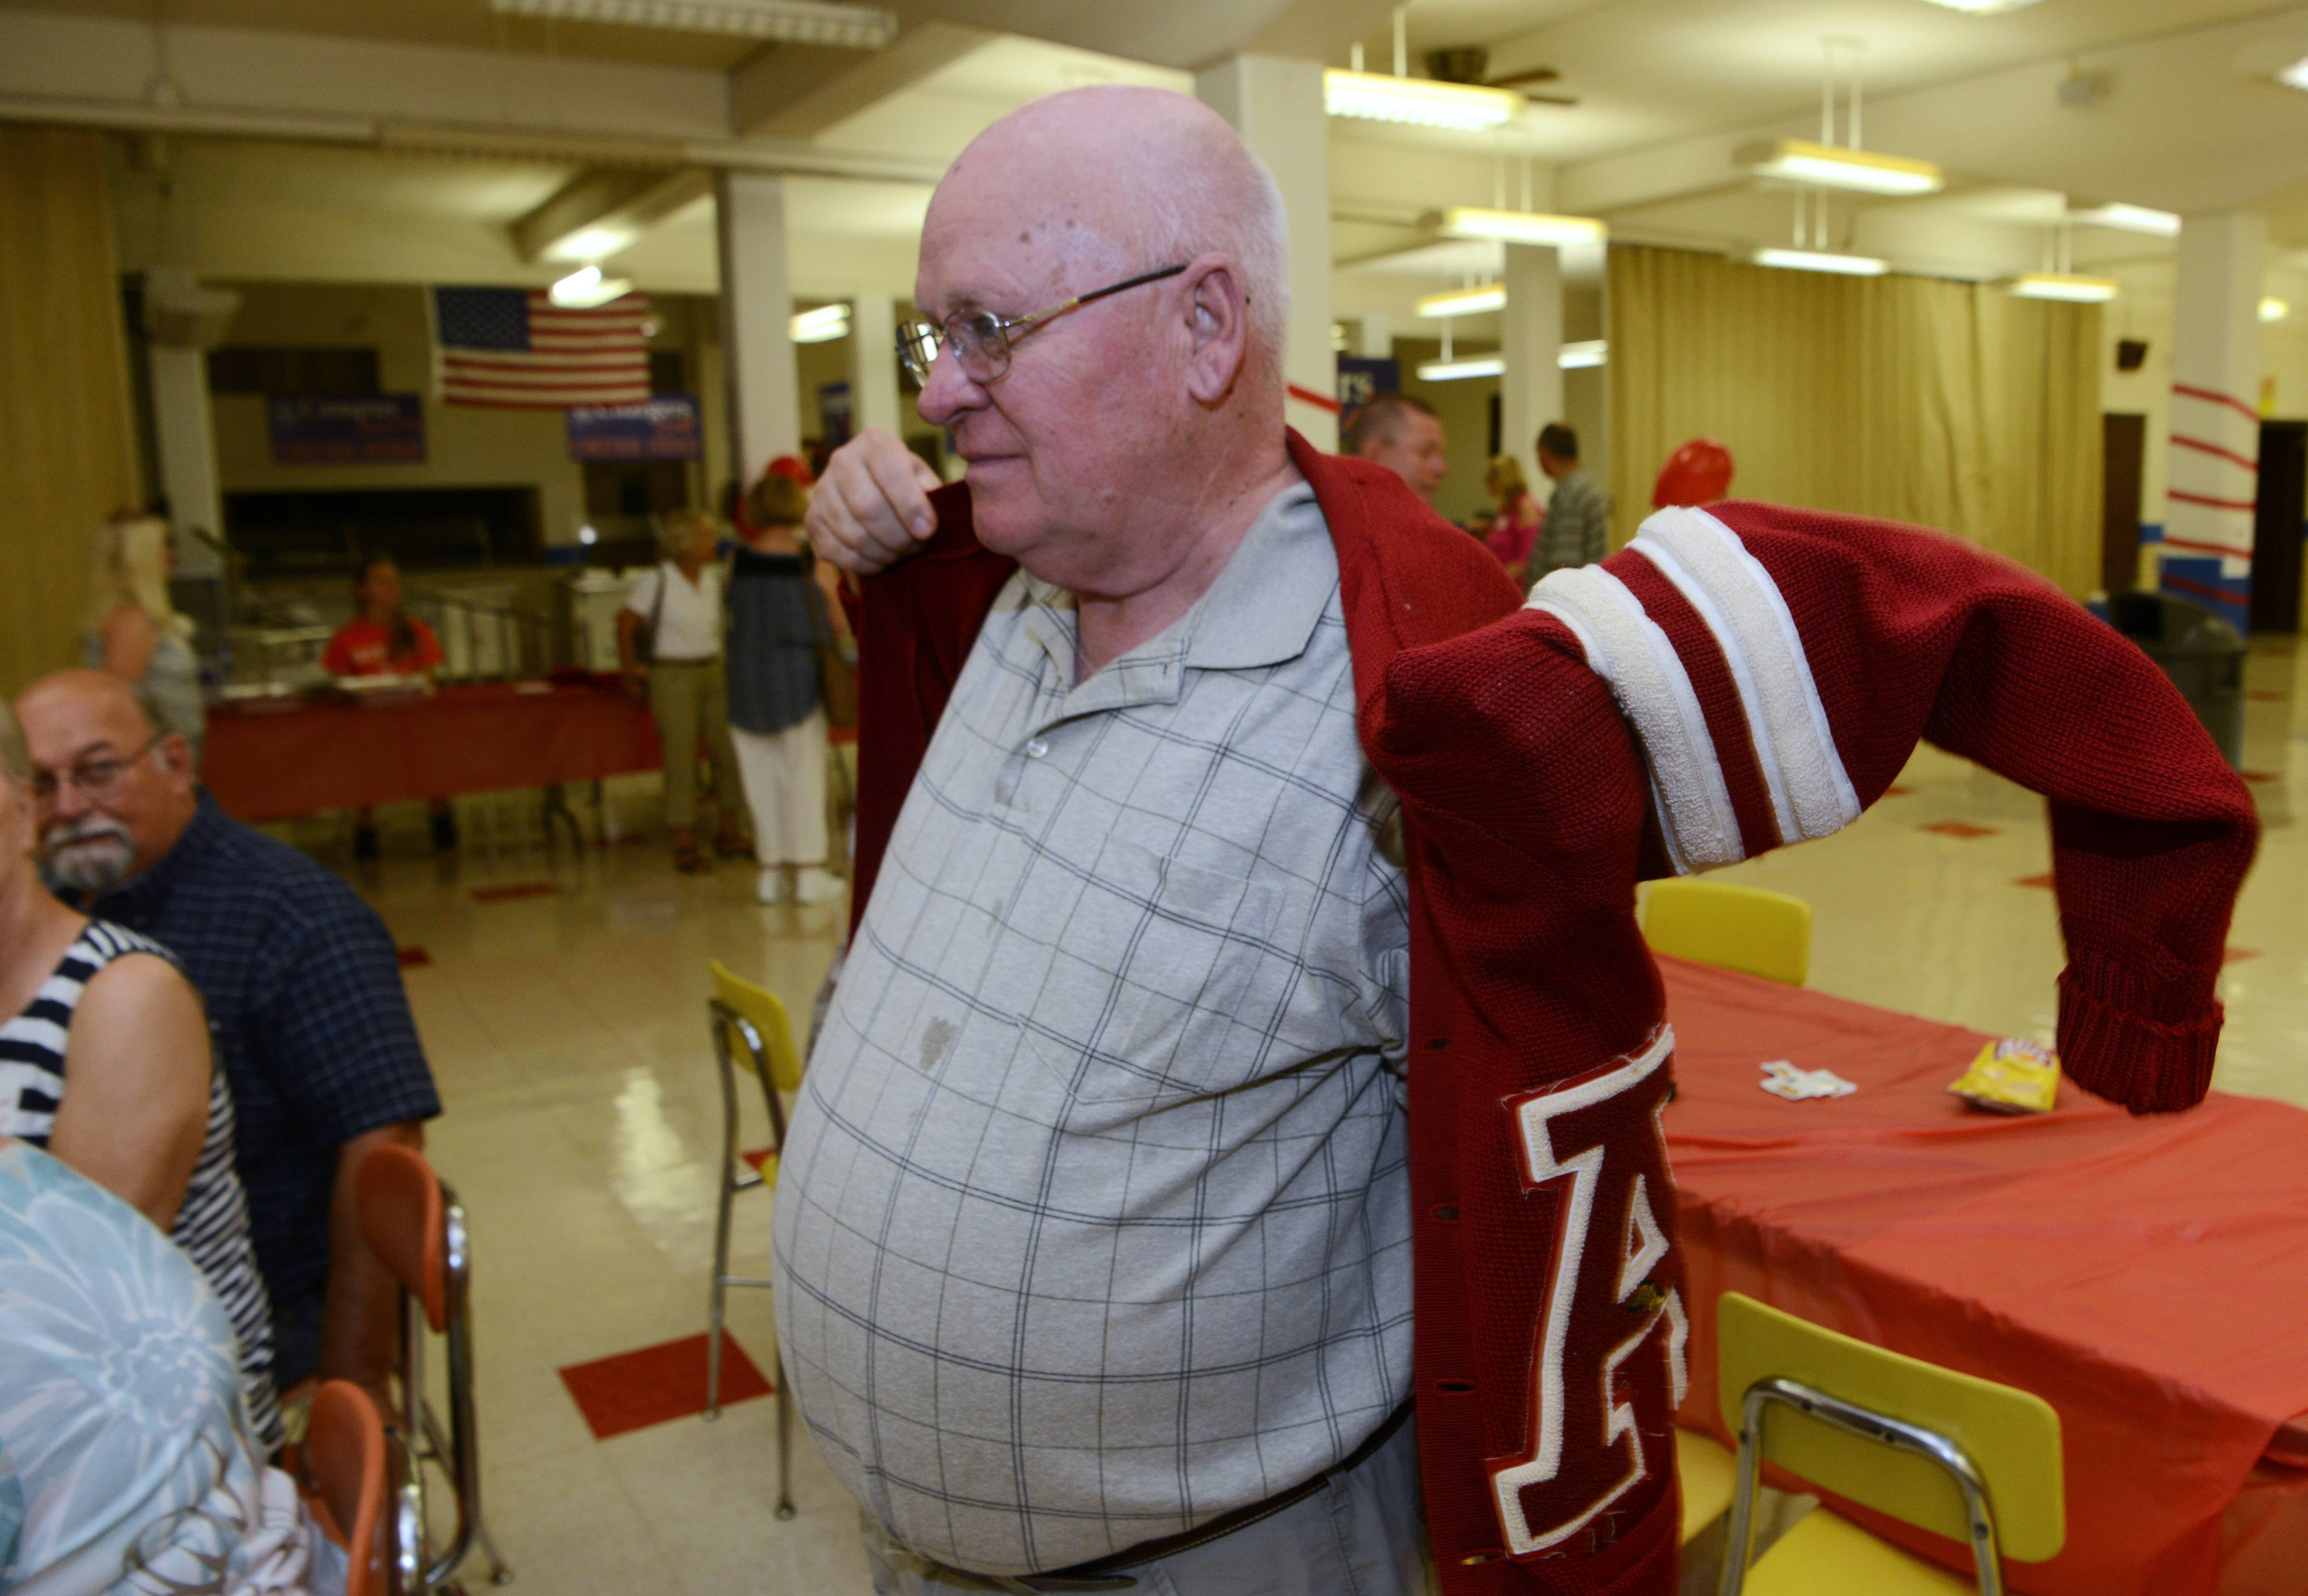 Mike East of the class of 1964 puts on his varsity sweater during the Arlington High School all-class homecoming, held at the former school building, which is now Christian Liberty Academy, in Arlington Heights Saturday.